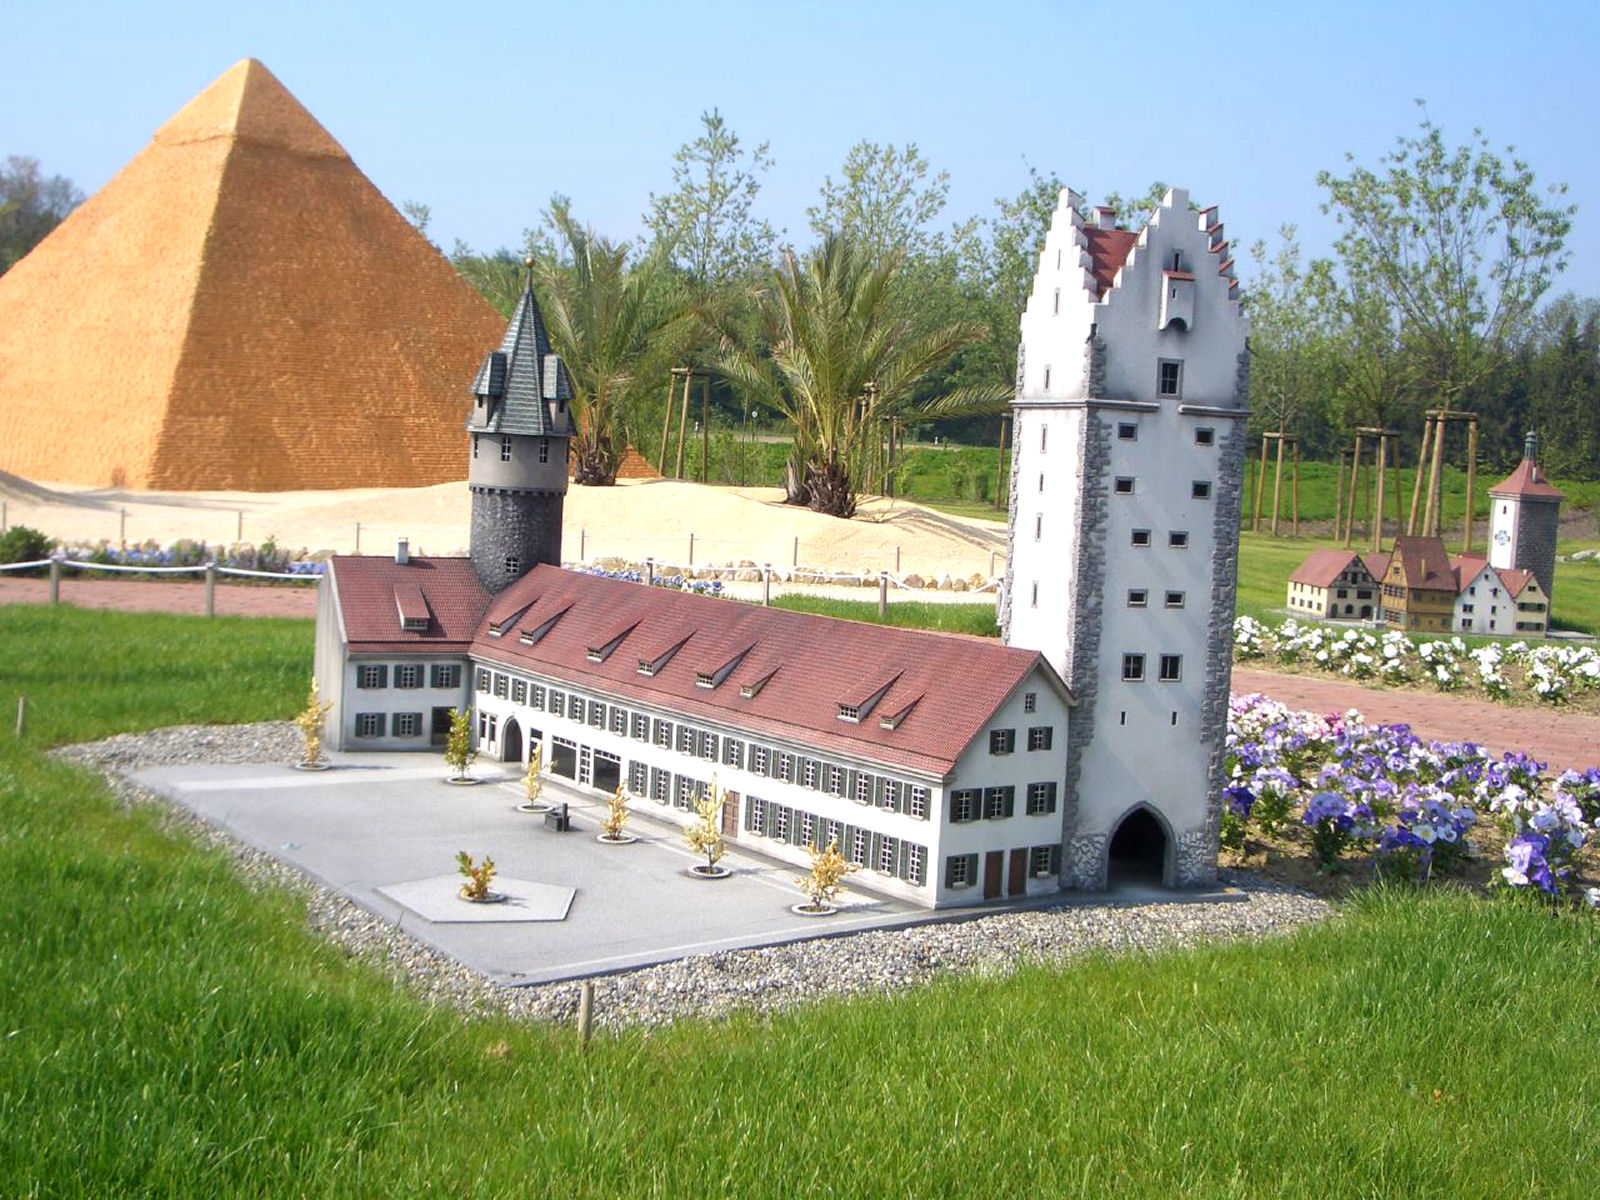 Model of the Ravensburg's Frauentor, Bauhütte and green tower at Minimundus, Klagenfurt, Austria